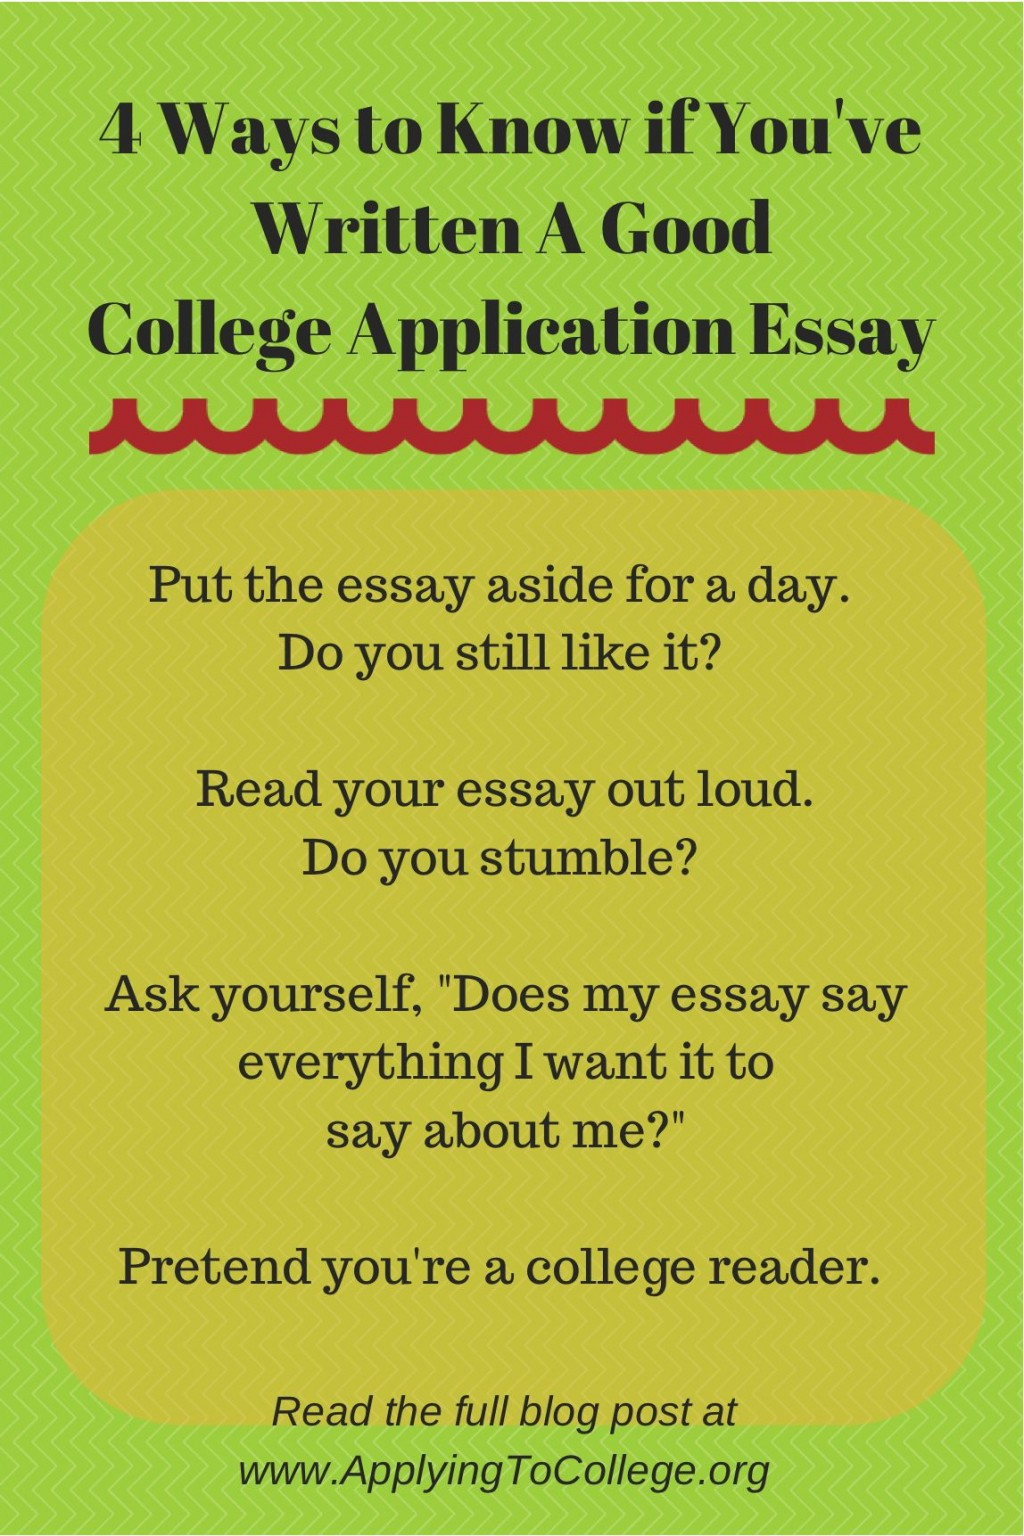 003 Common Appay Prompts How To Write Application School Uc College Admission Ucf Prompt Examples Texas Admissions Rare App Essay 2015-16 Large